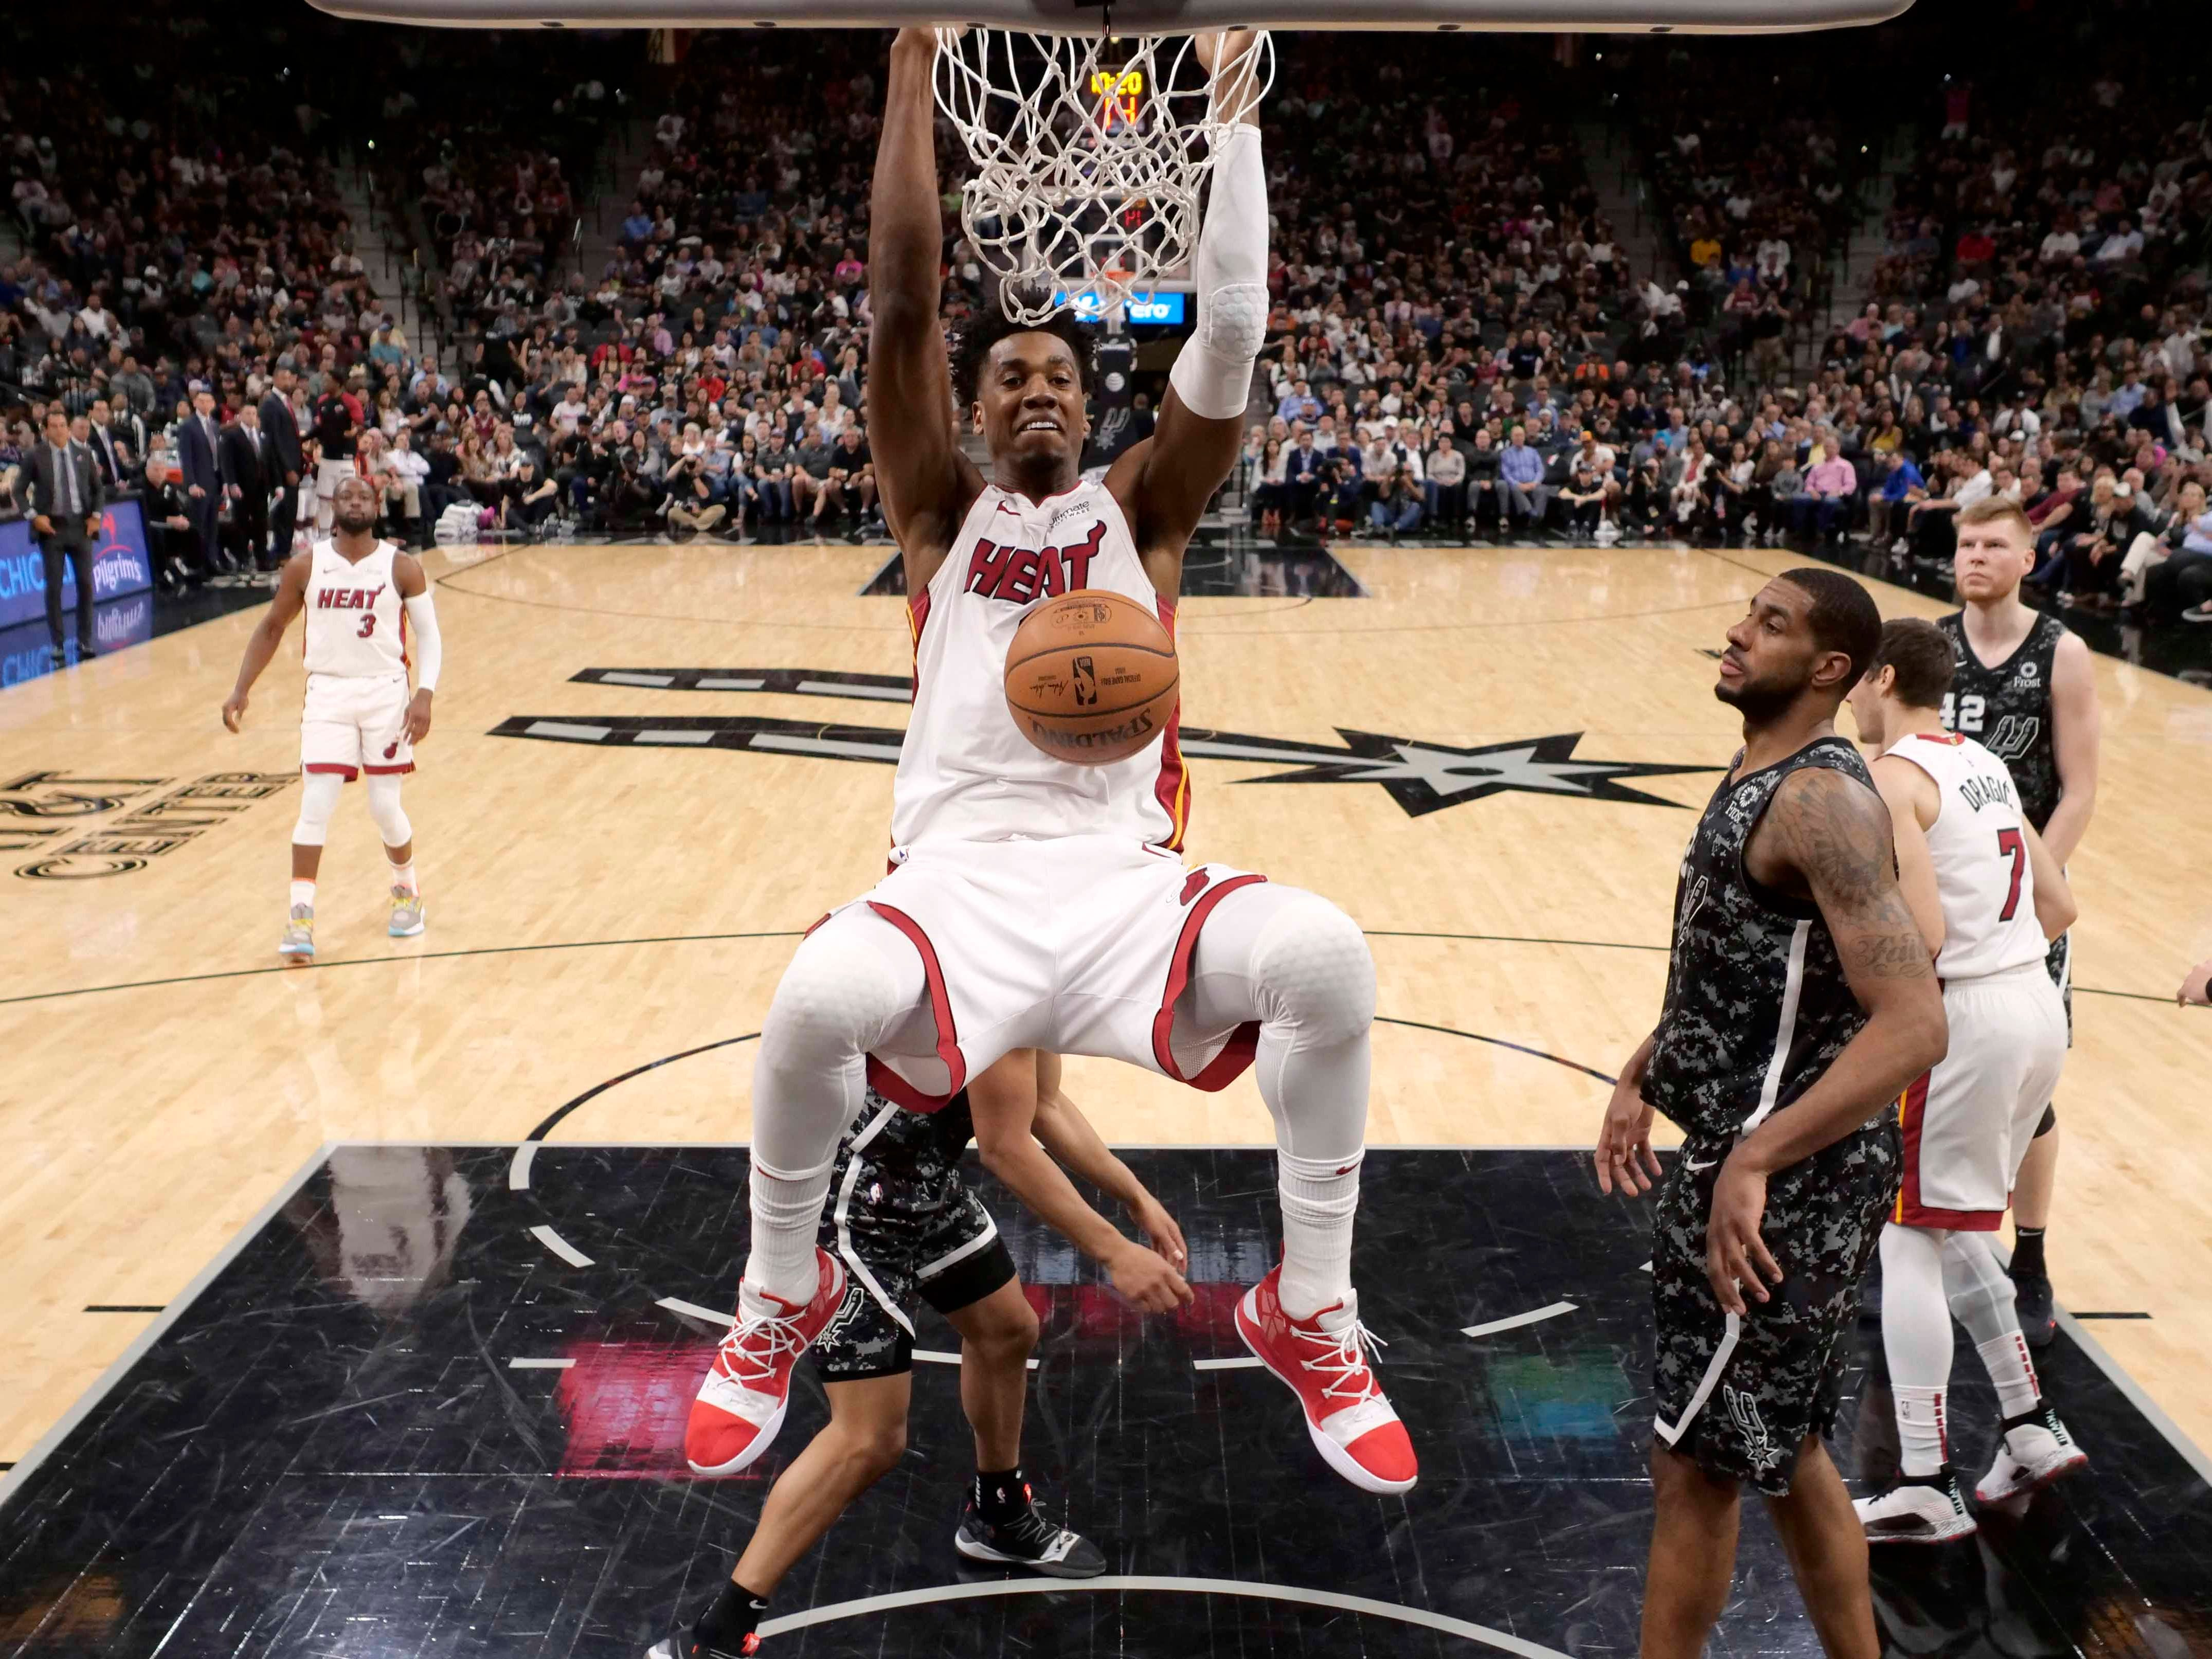 March 20: Miami Heat center Hassan Whiteside dunks the ball against the San Antonio Spurs.